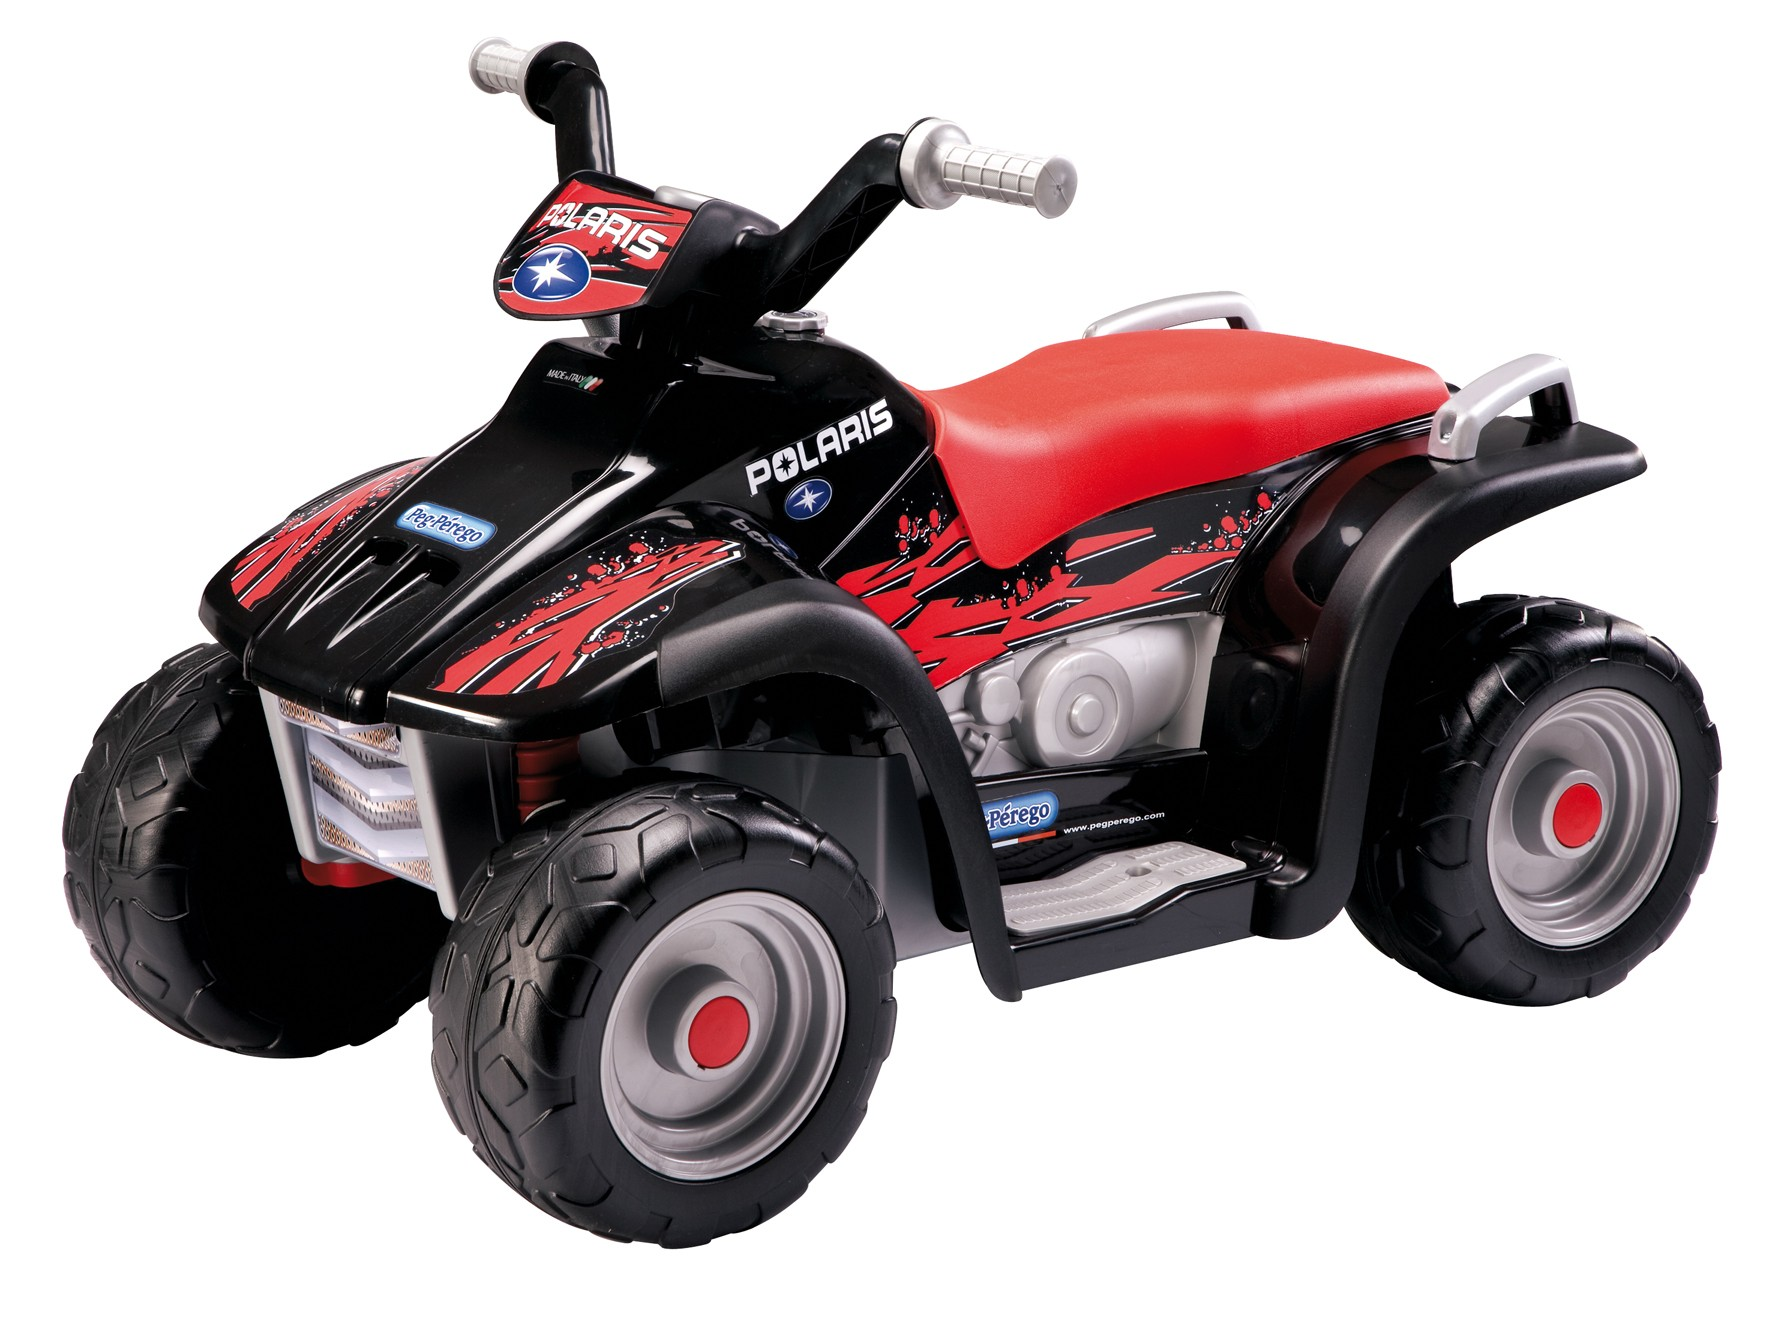 Peg Perego Polaris Sportsman 400 Nero